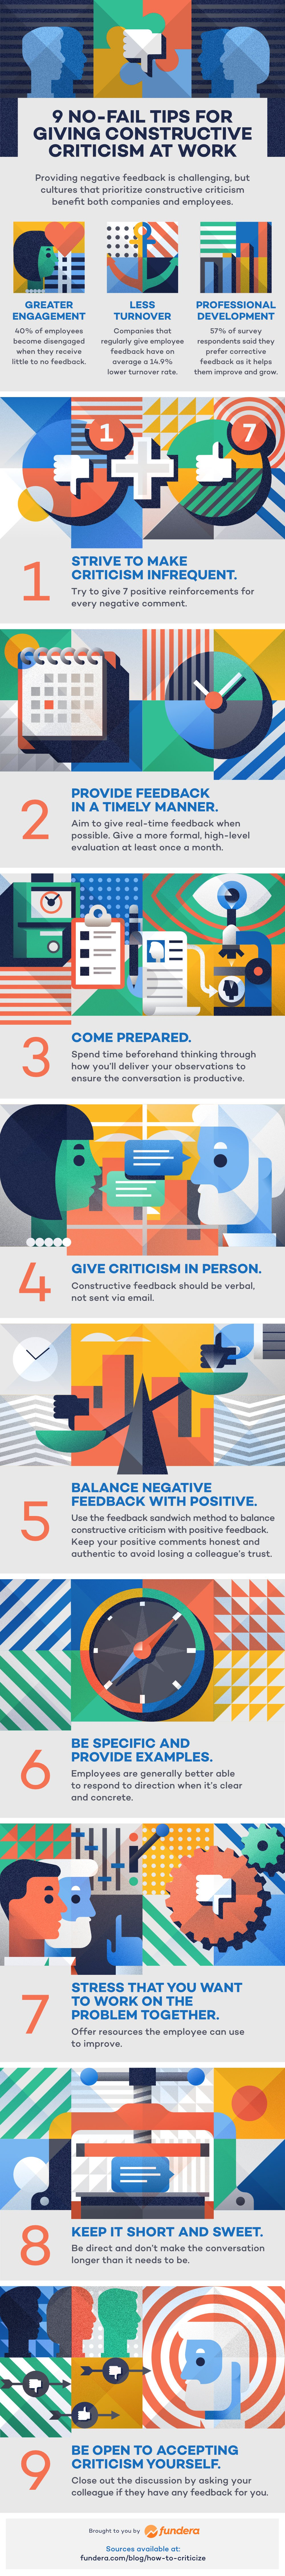 9 No-Fail Tips for Giving Constructive Criticism at Work